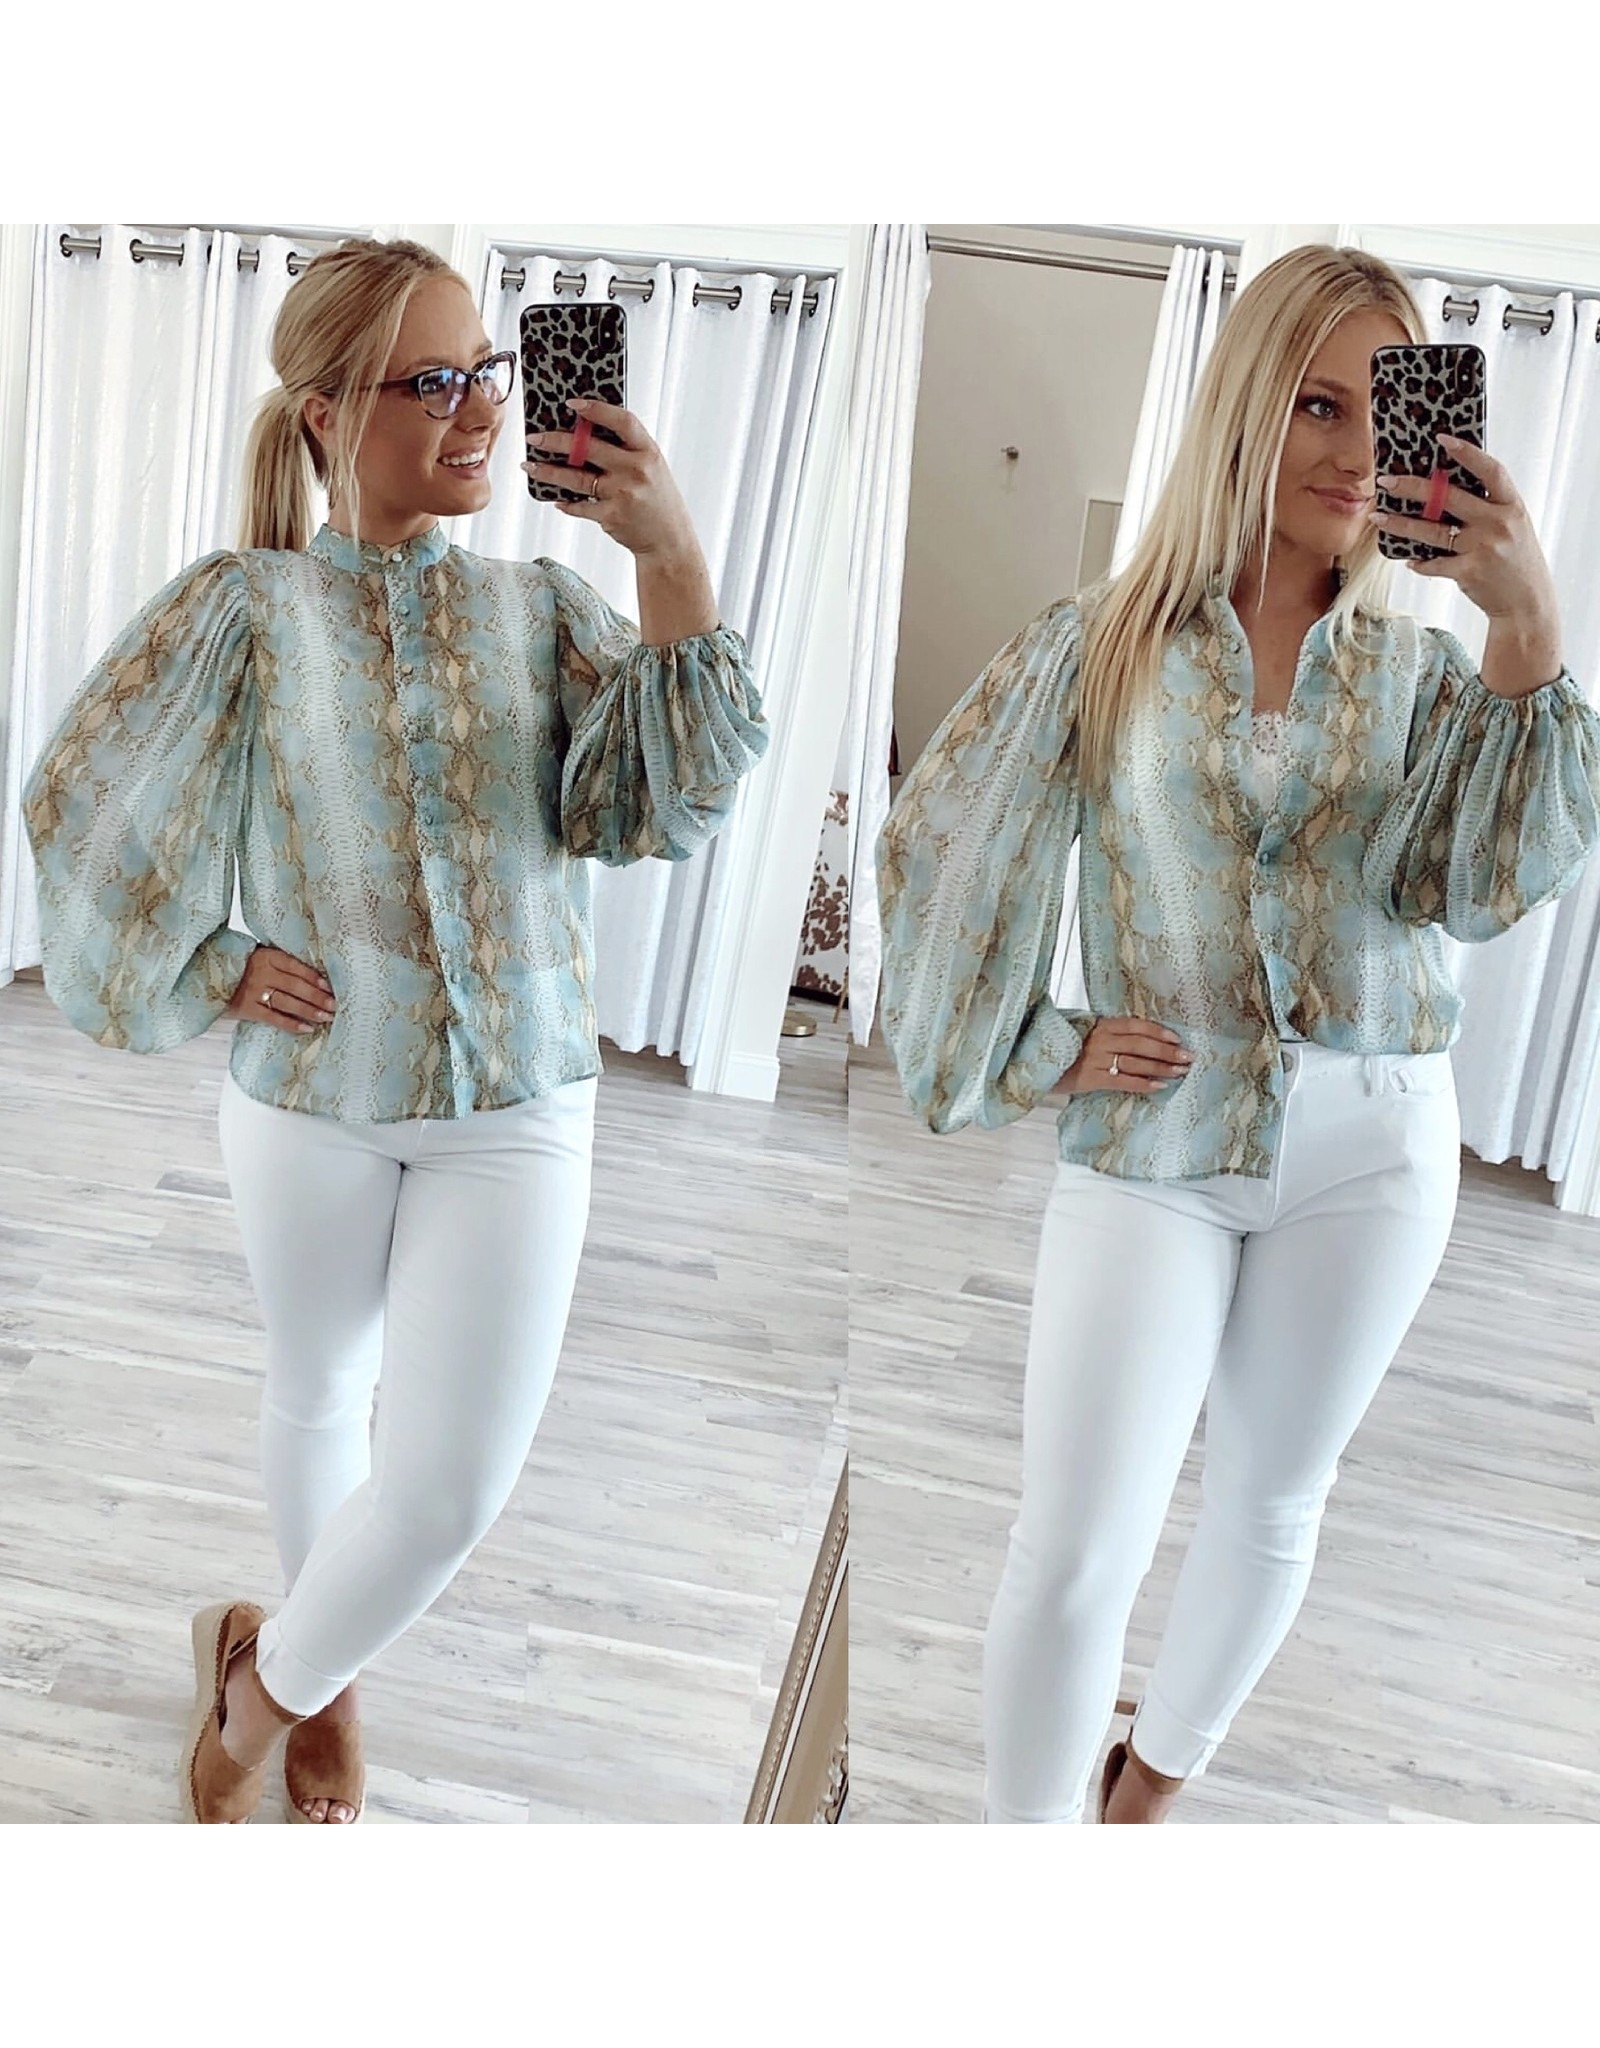 Lucy Paris Pleated Sleeves Snakeskin Top - Seafoam